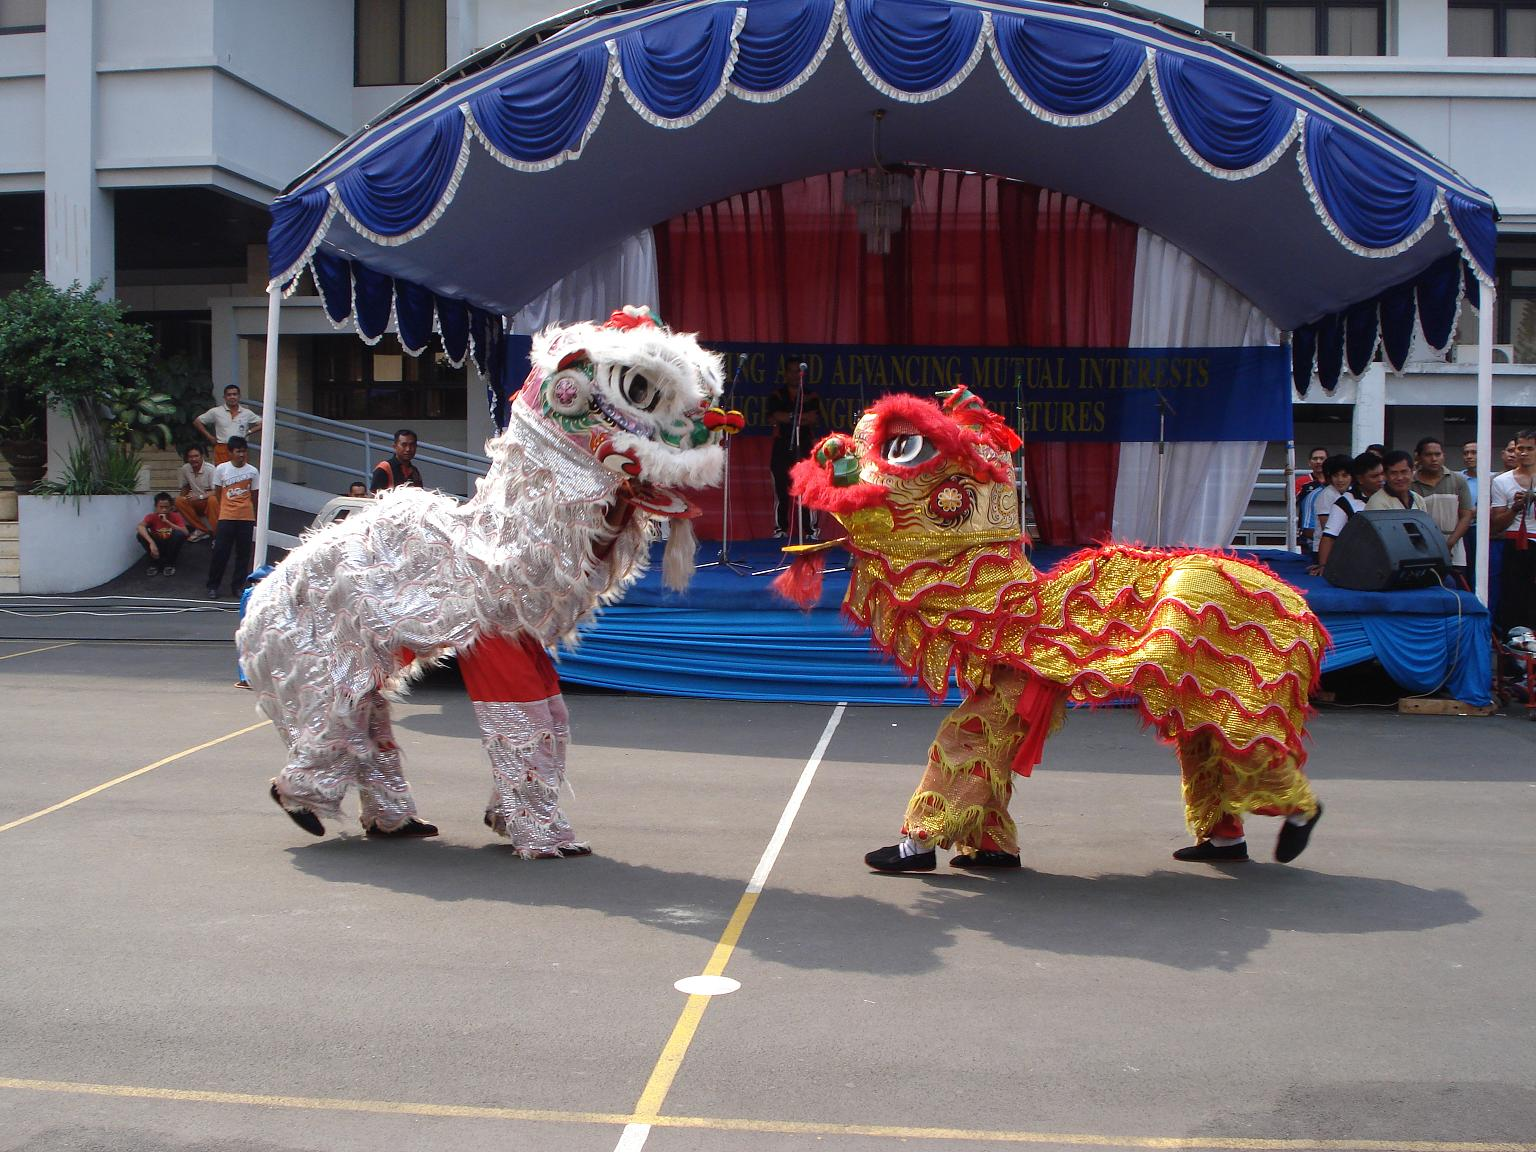 BBCnews: Millions prepare to celebrate Chinese Lunar New Year